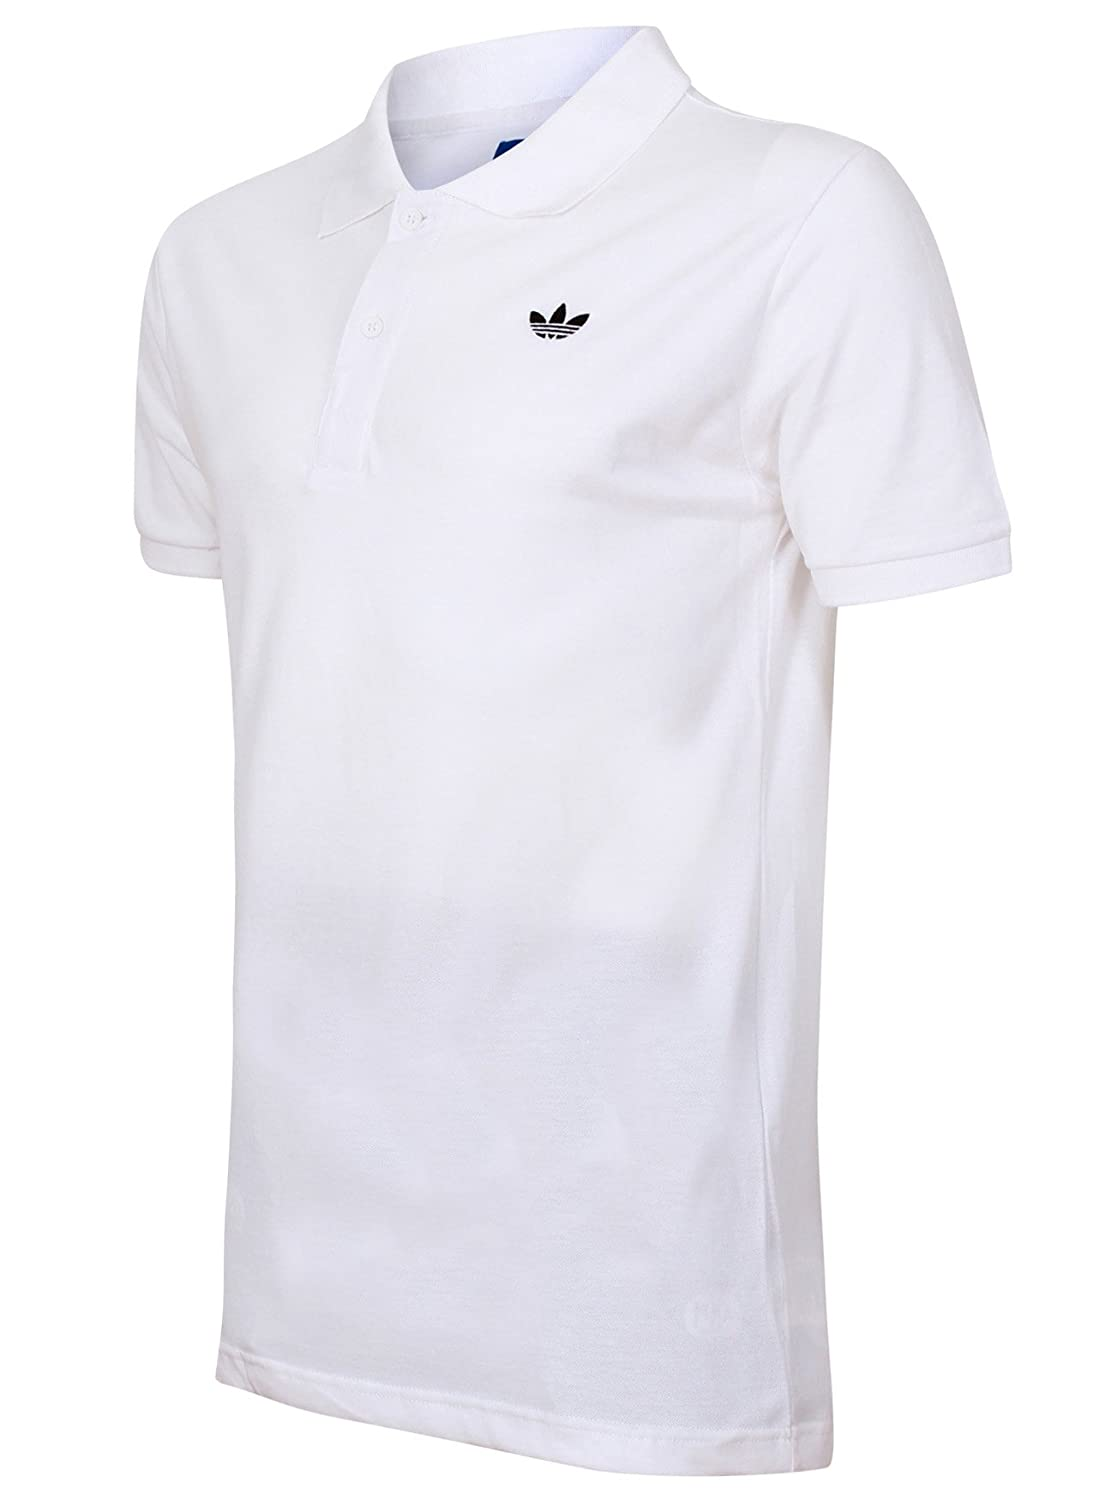 5d153b39fb Men's Adidas Originals Polo Shirt T-Shirt - Black, White (XL, White):  Amazon.co.uk: Sports & Outdoors